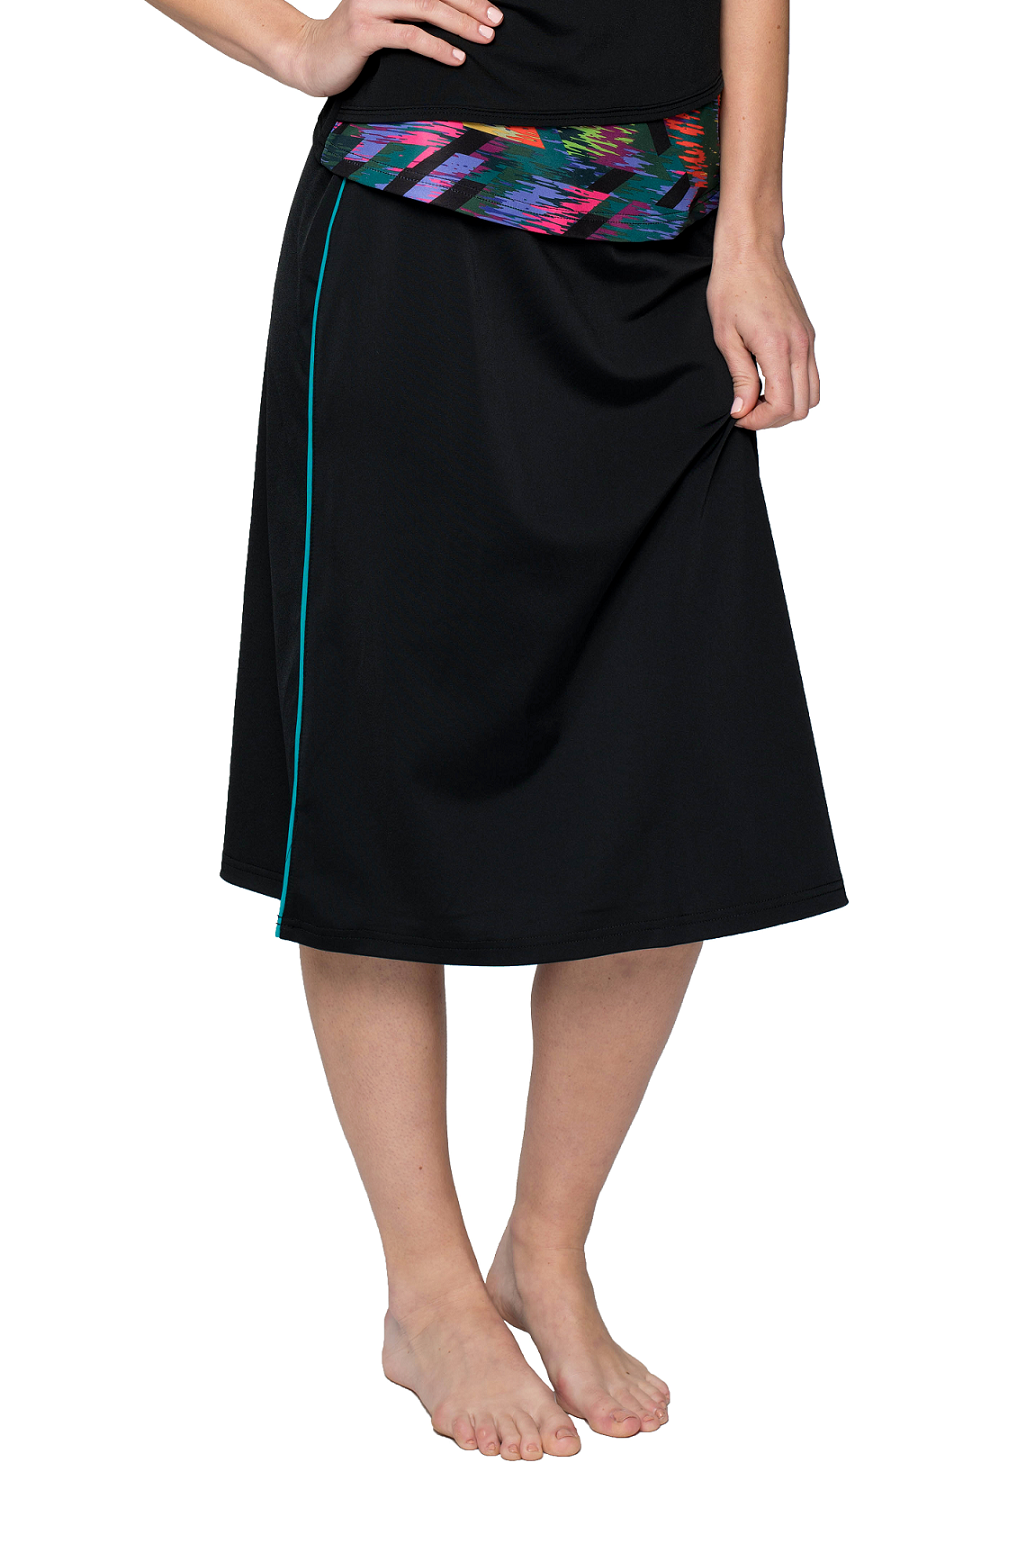 d220f0aa76d Classic Long Water Skirt with Piping Accents – 25″ long A-line shape for  freedom of movement plus attached leggings for added coverage.